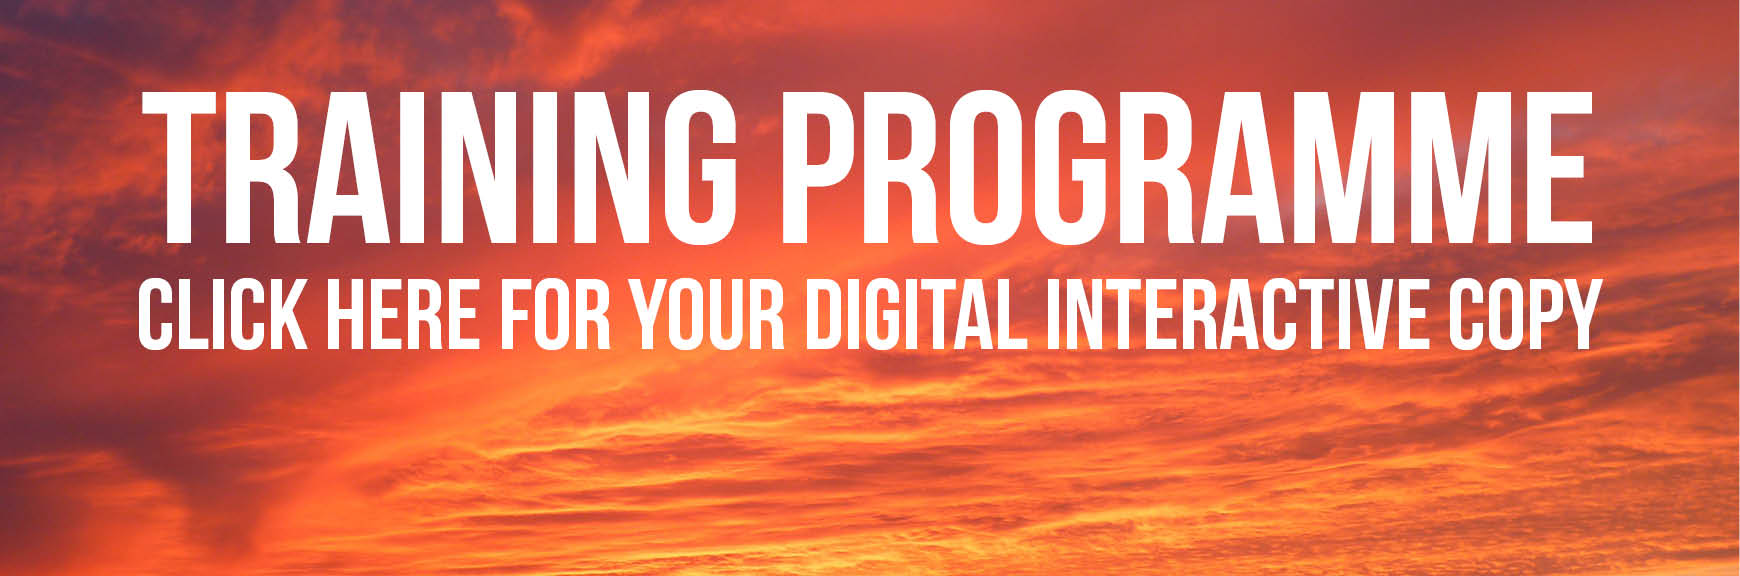 Digital Training Programme